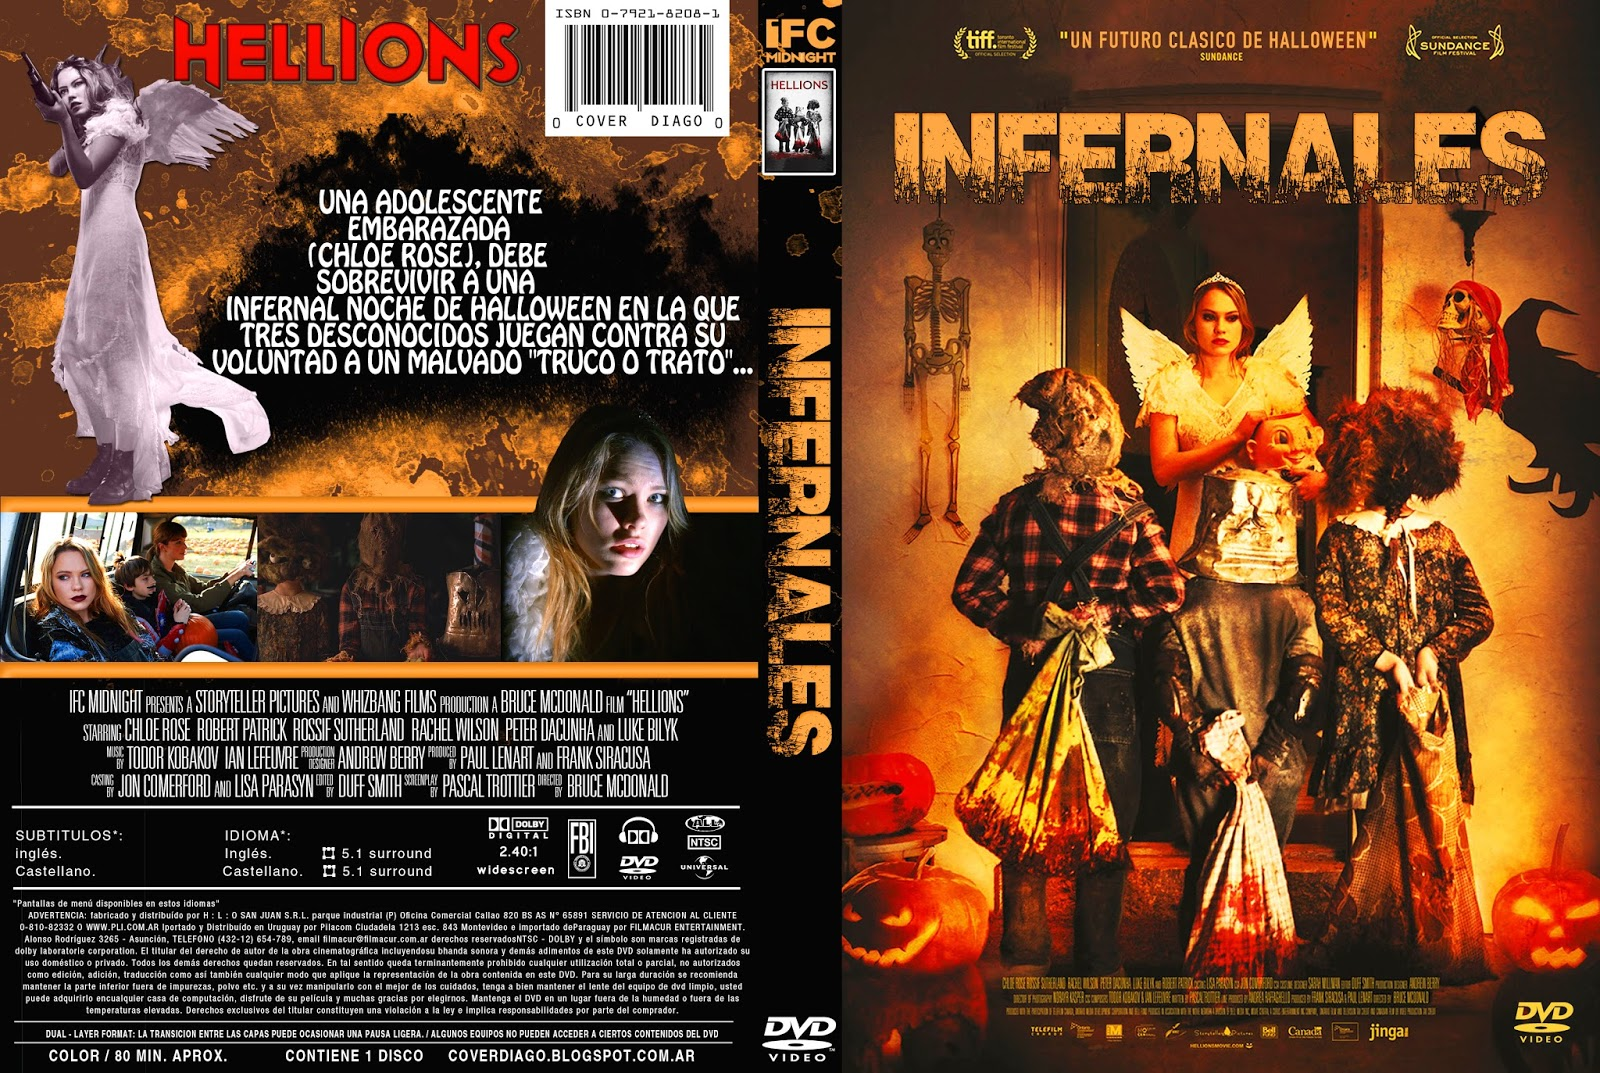 the horrors of halloween: hellions (2015) dvd and blu-ray covers